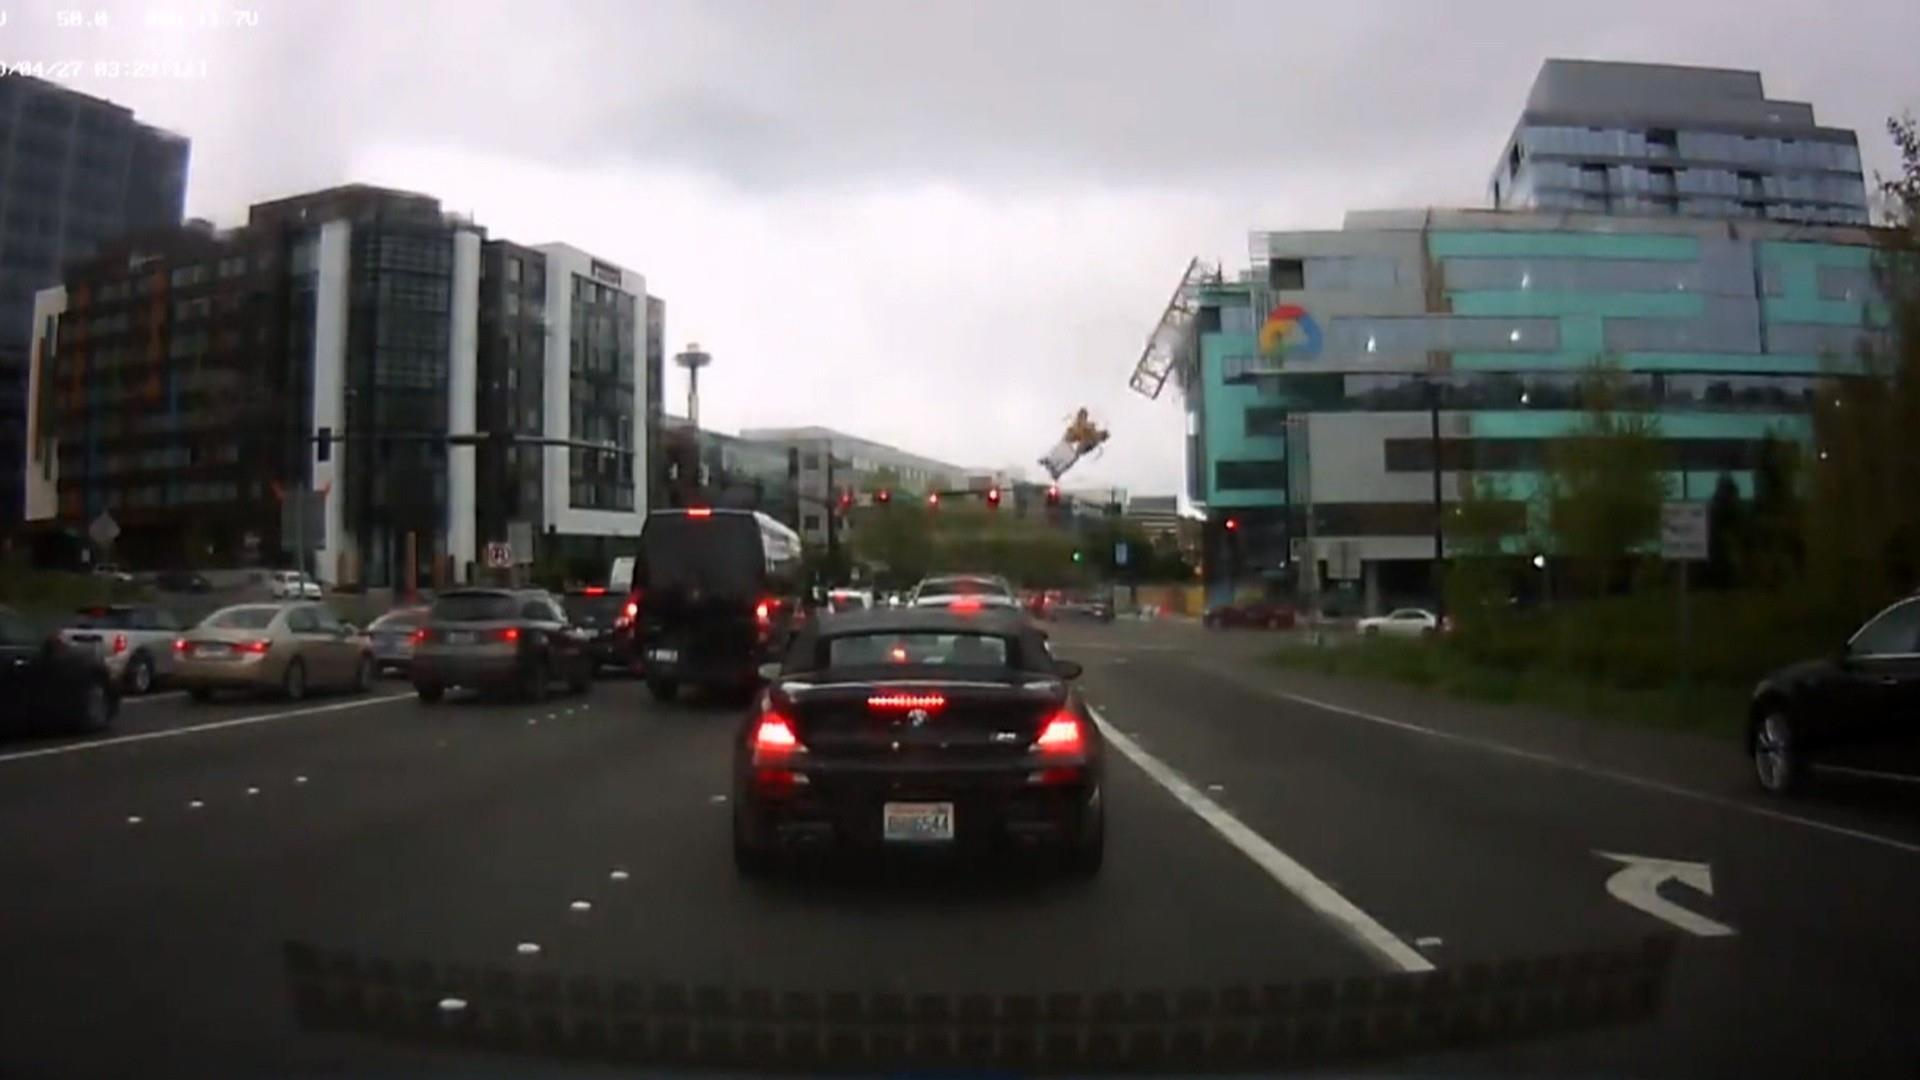 Seattle crane accident video shows it hitting a building before falling onto cars below